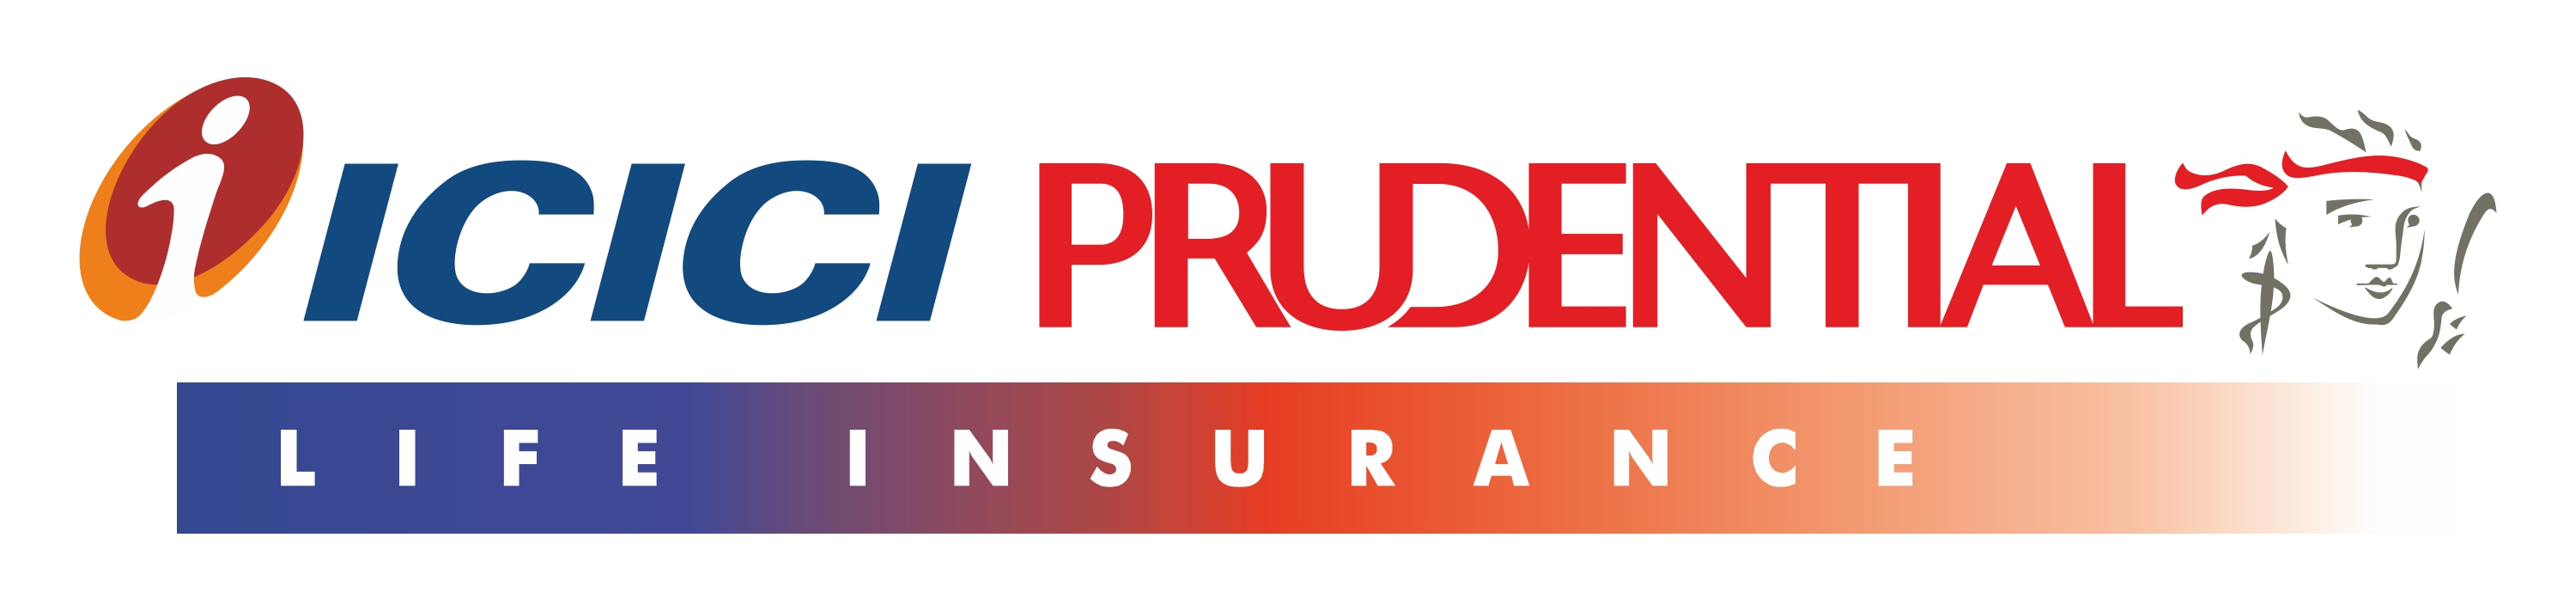 Prudential Life Insurance Quotes Prudential Life Insurance Quotes  44Billionlater